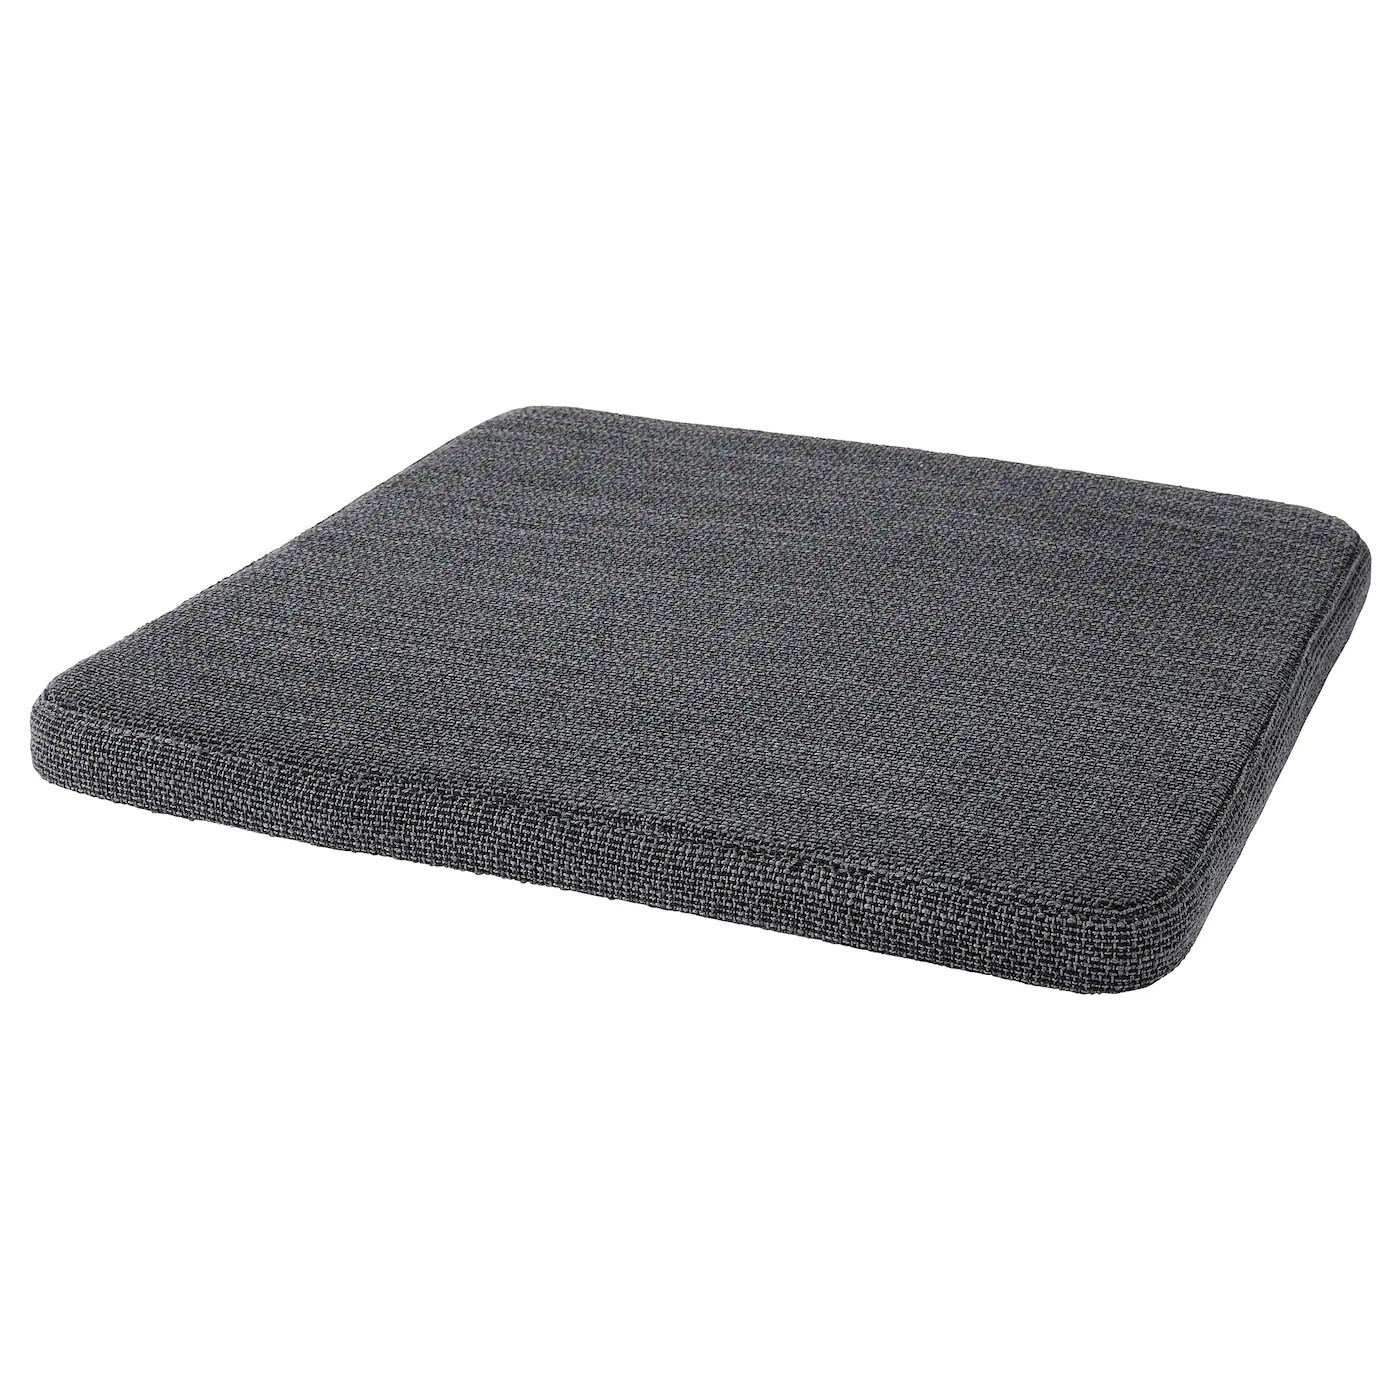 carreaux de chaise ikea suisse